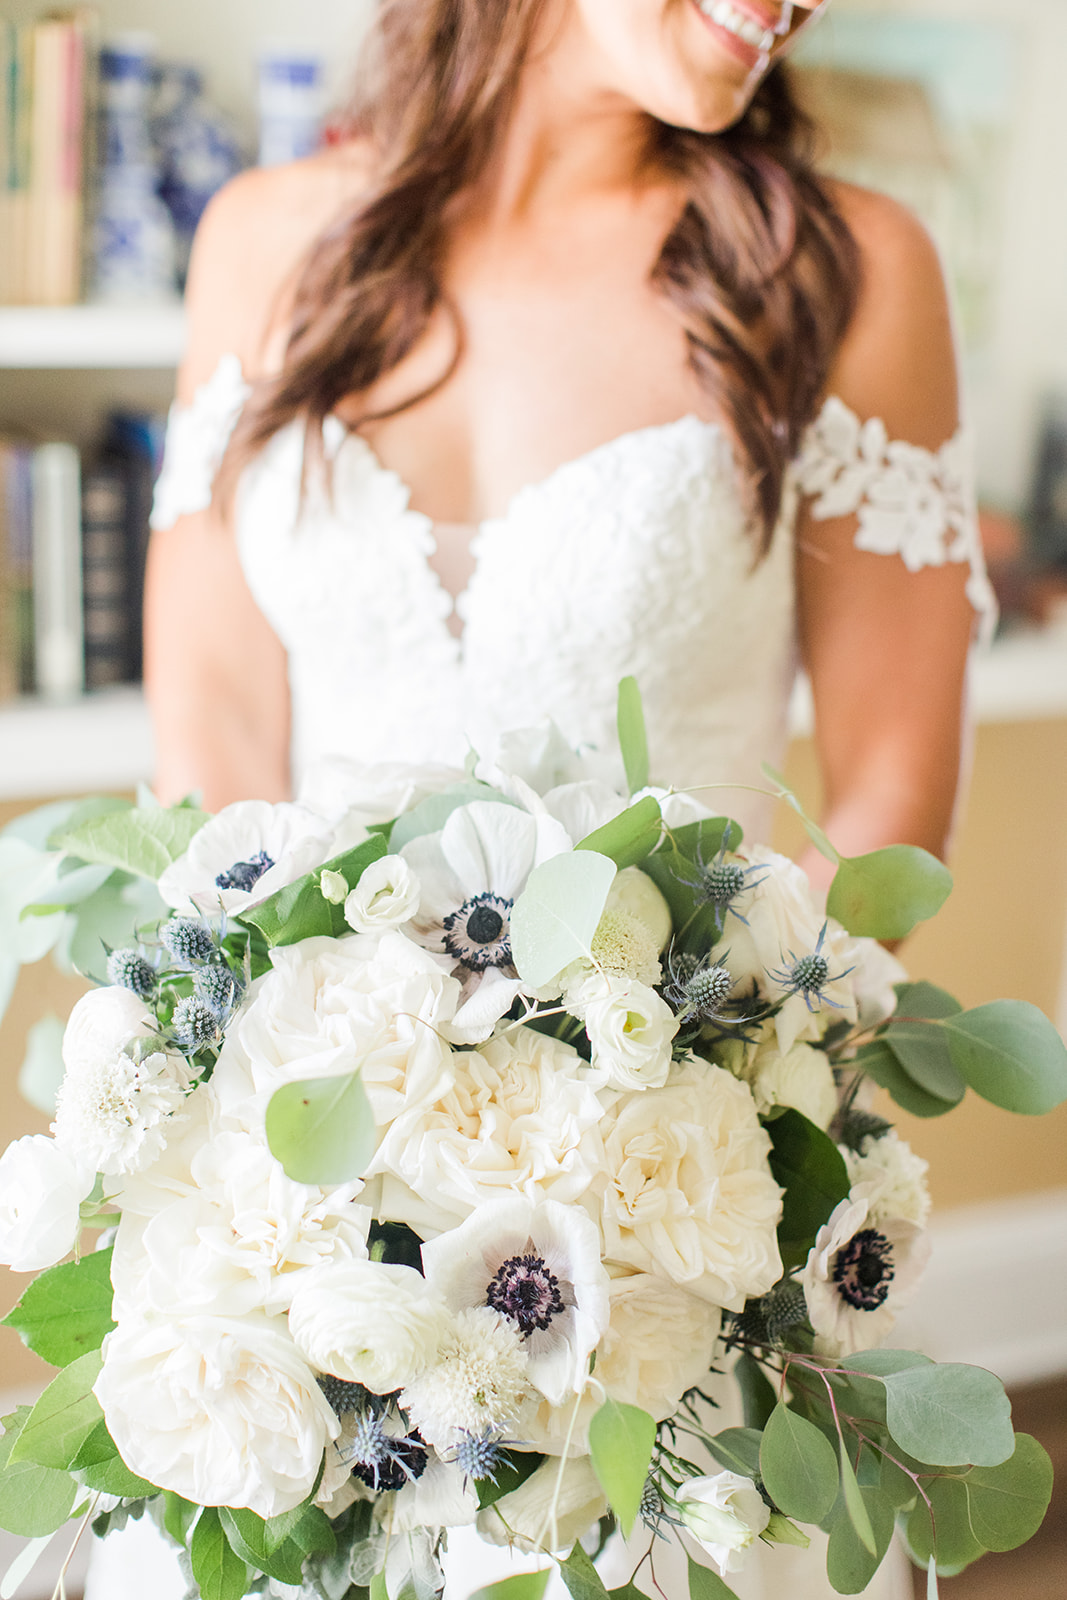 bride holds bouquet of white and green flowers